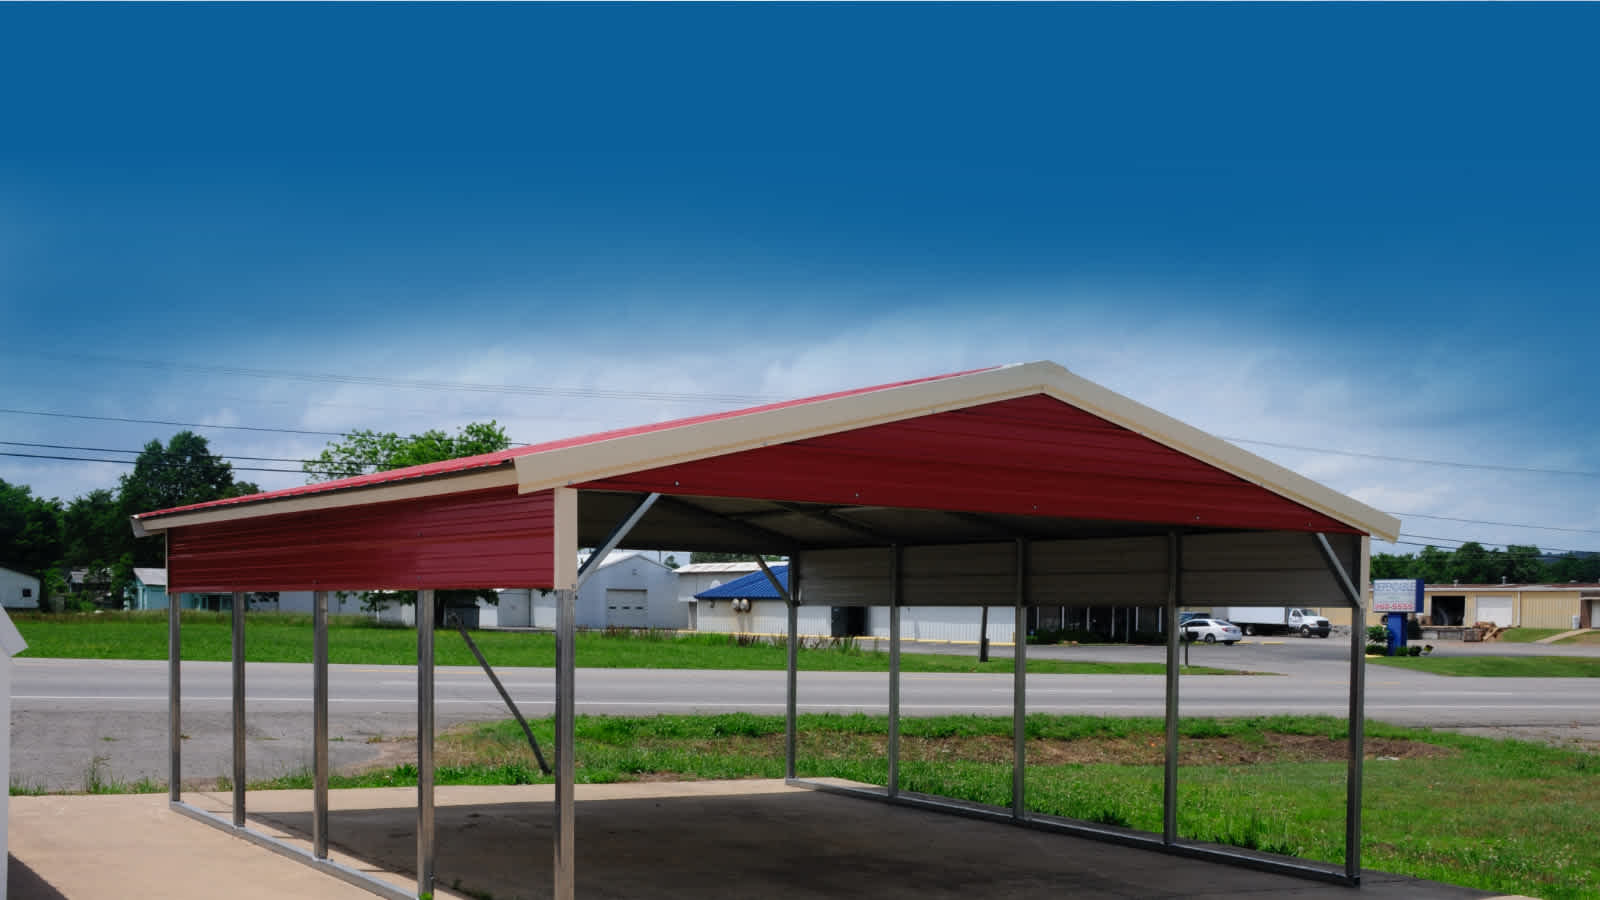 Metal Carports Steel Carport Kits For Sale At Reasonable Prices